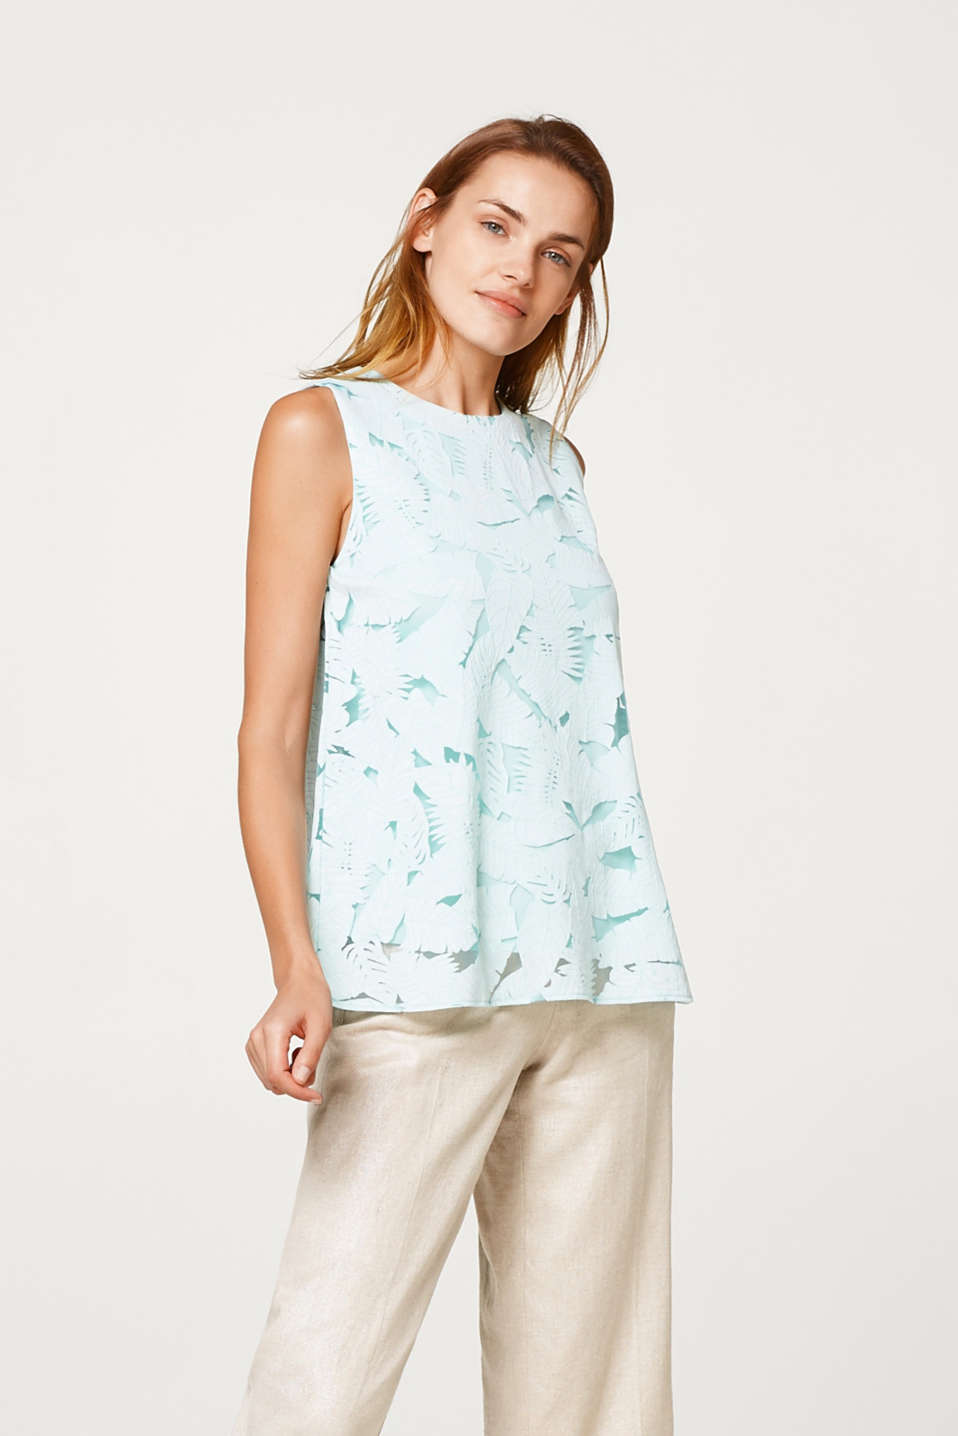 Esprit - Blouse top with burnt-outs in a leaf look